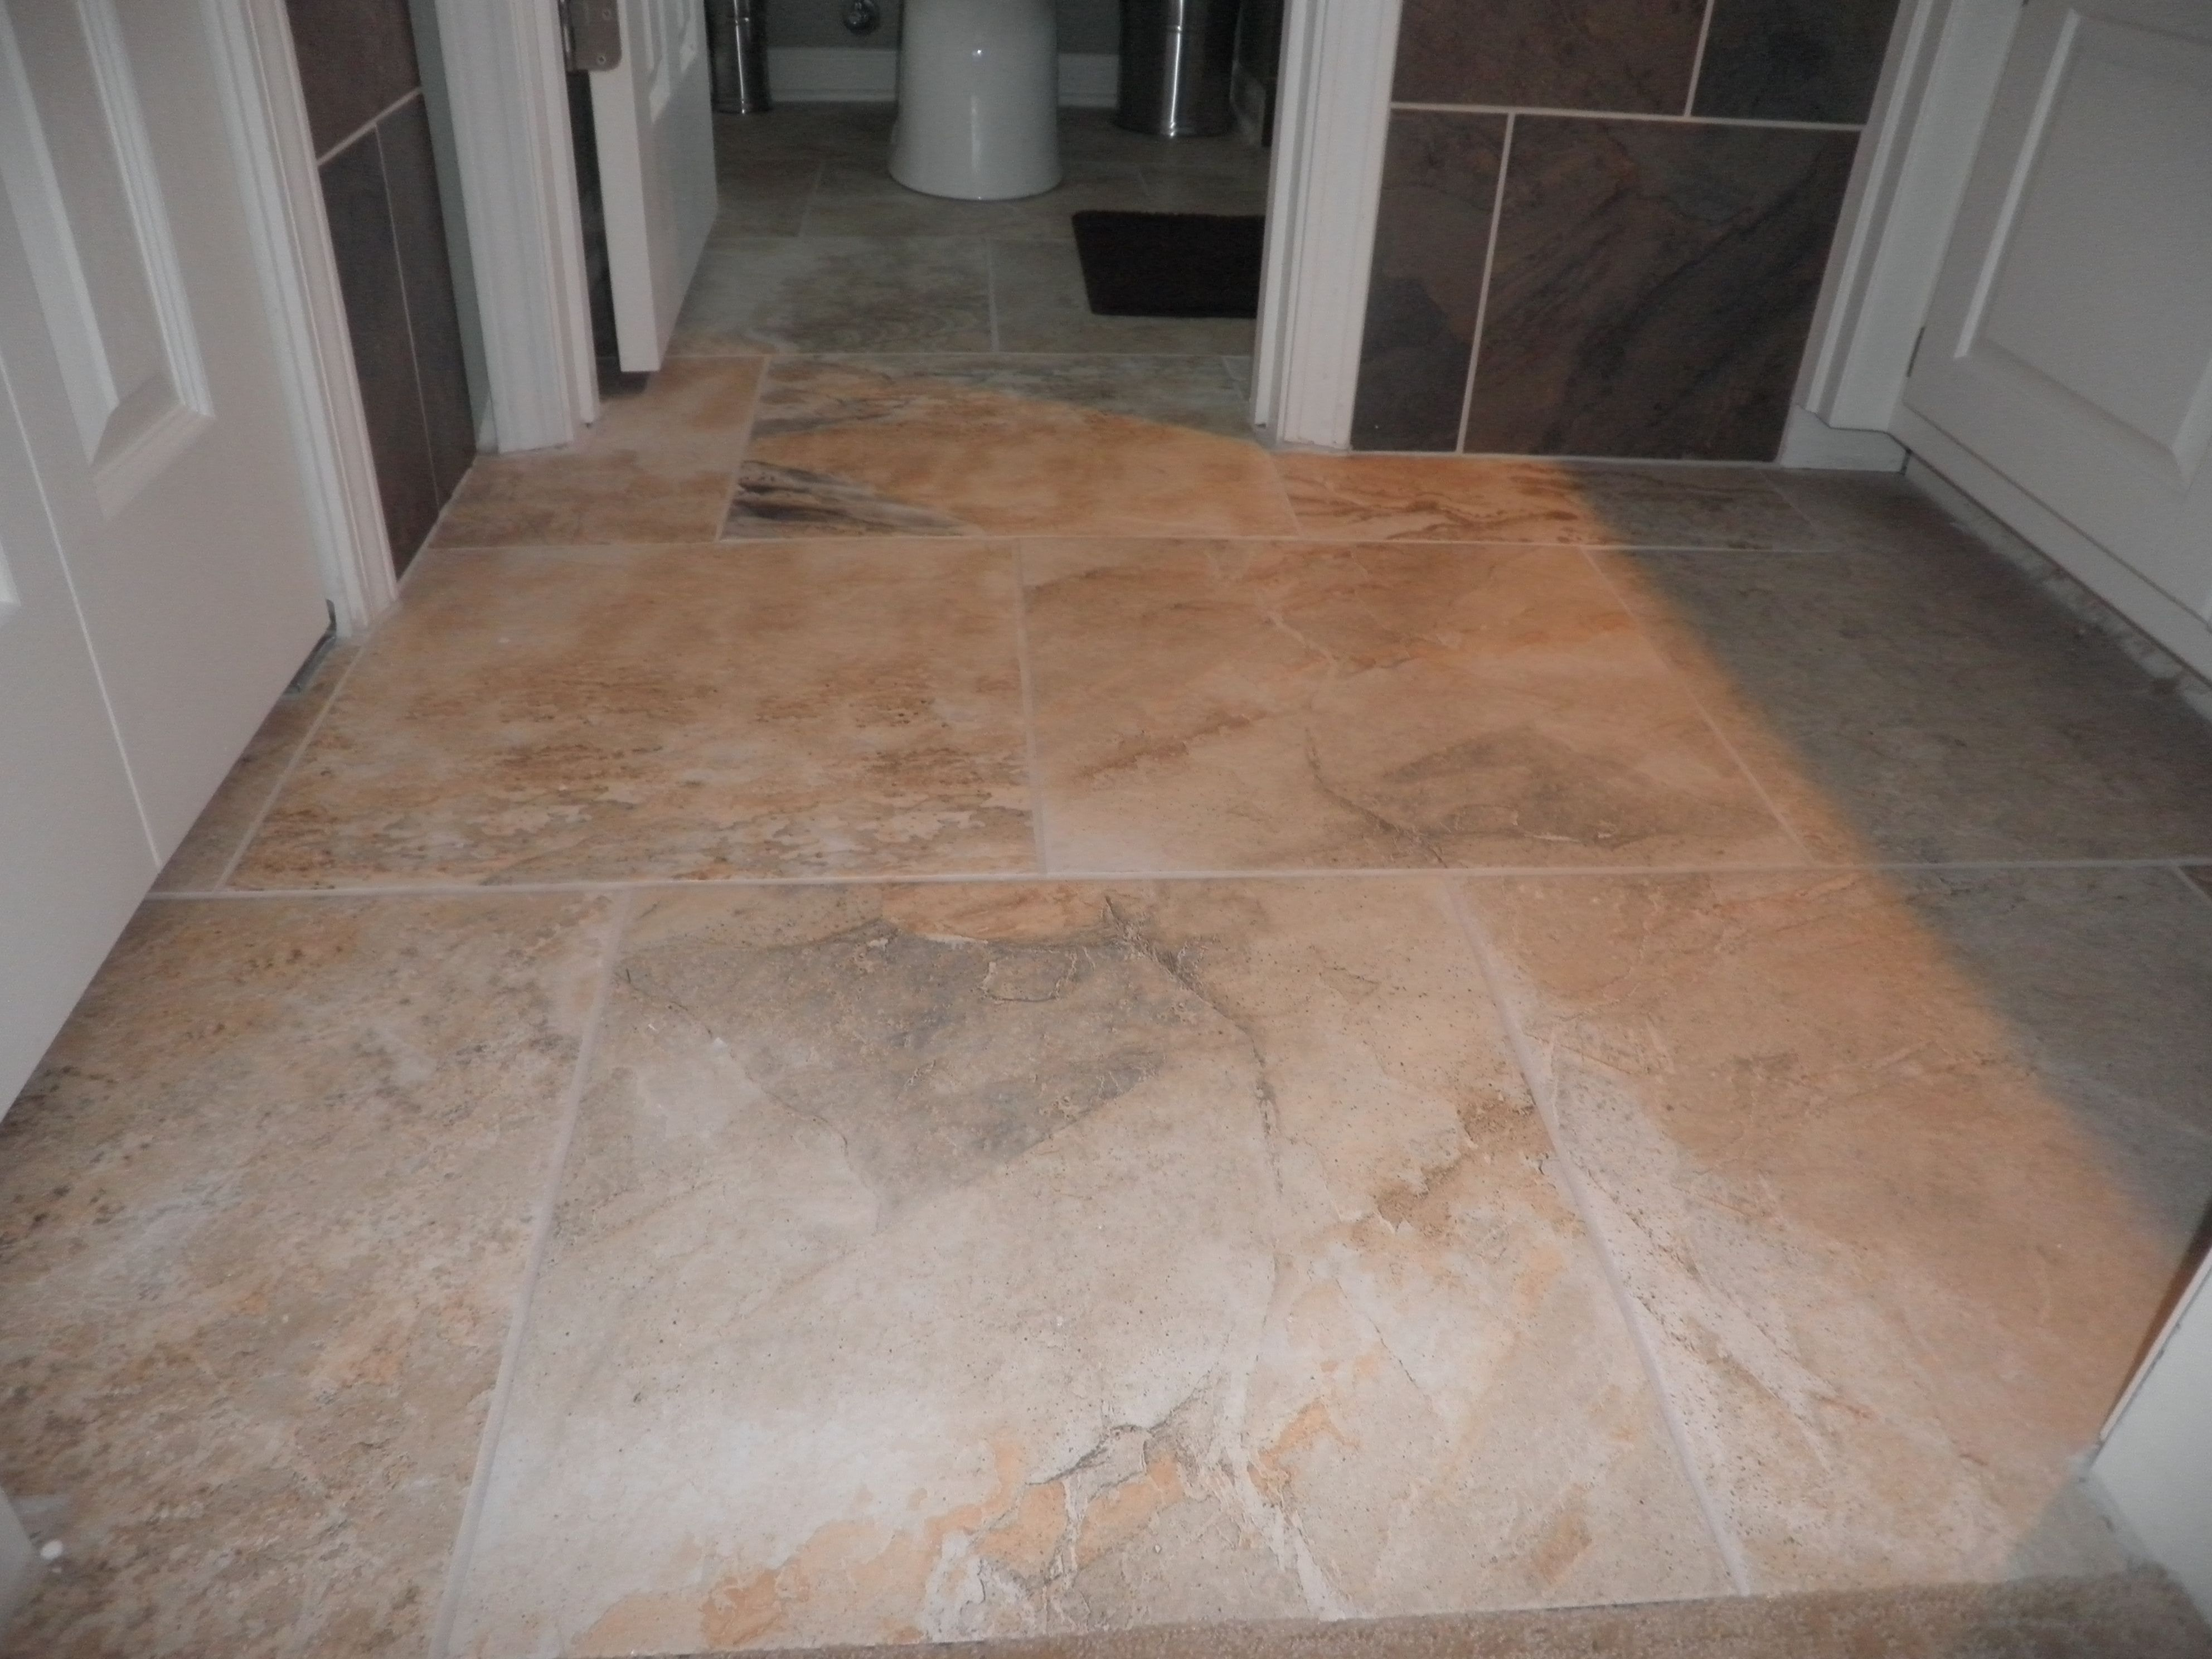 Using larger sized floor tiles works well with a compact sized